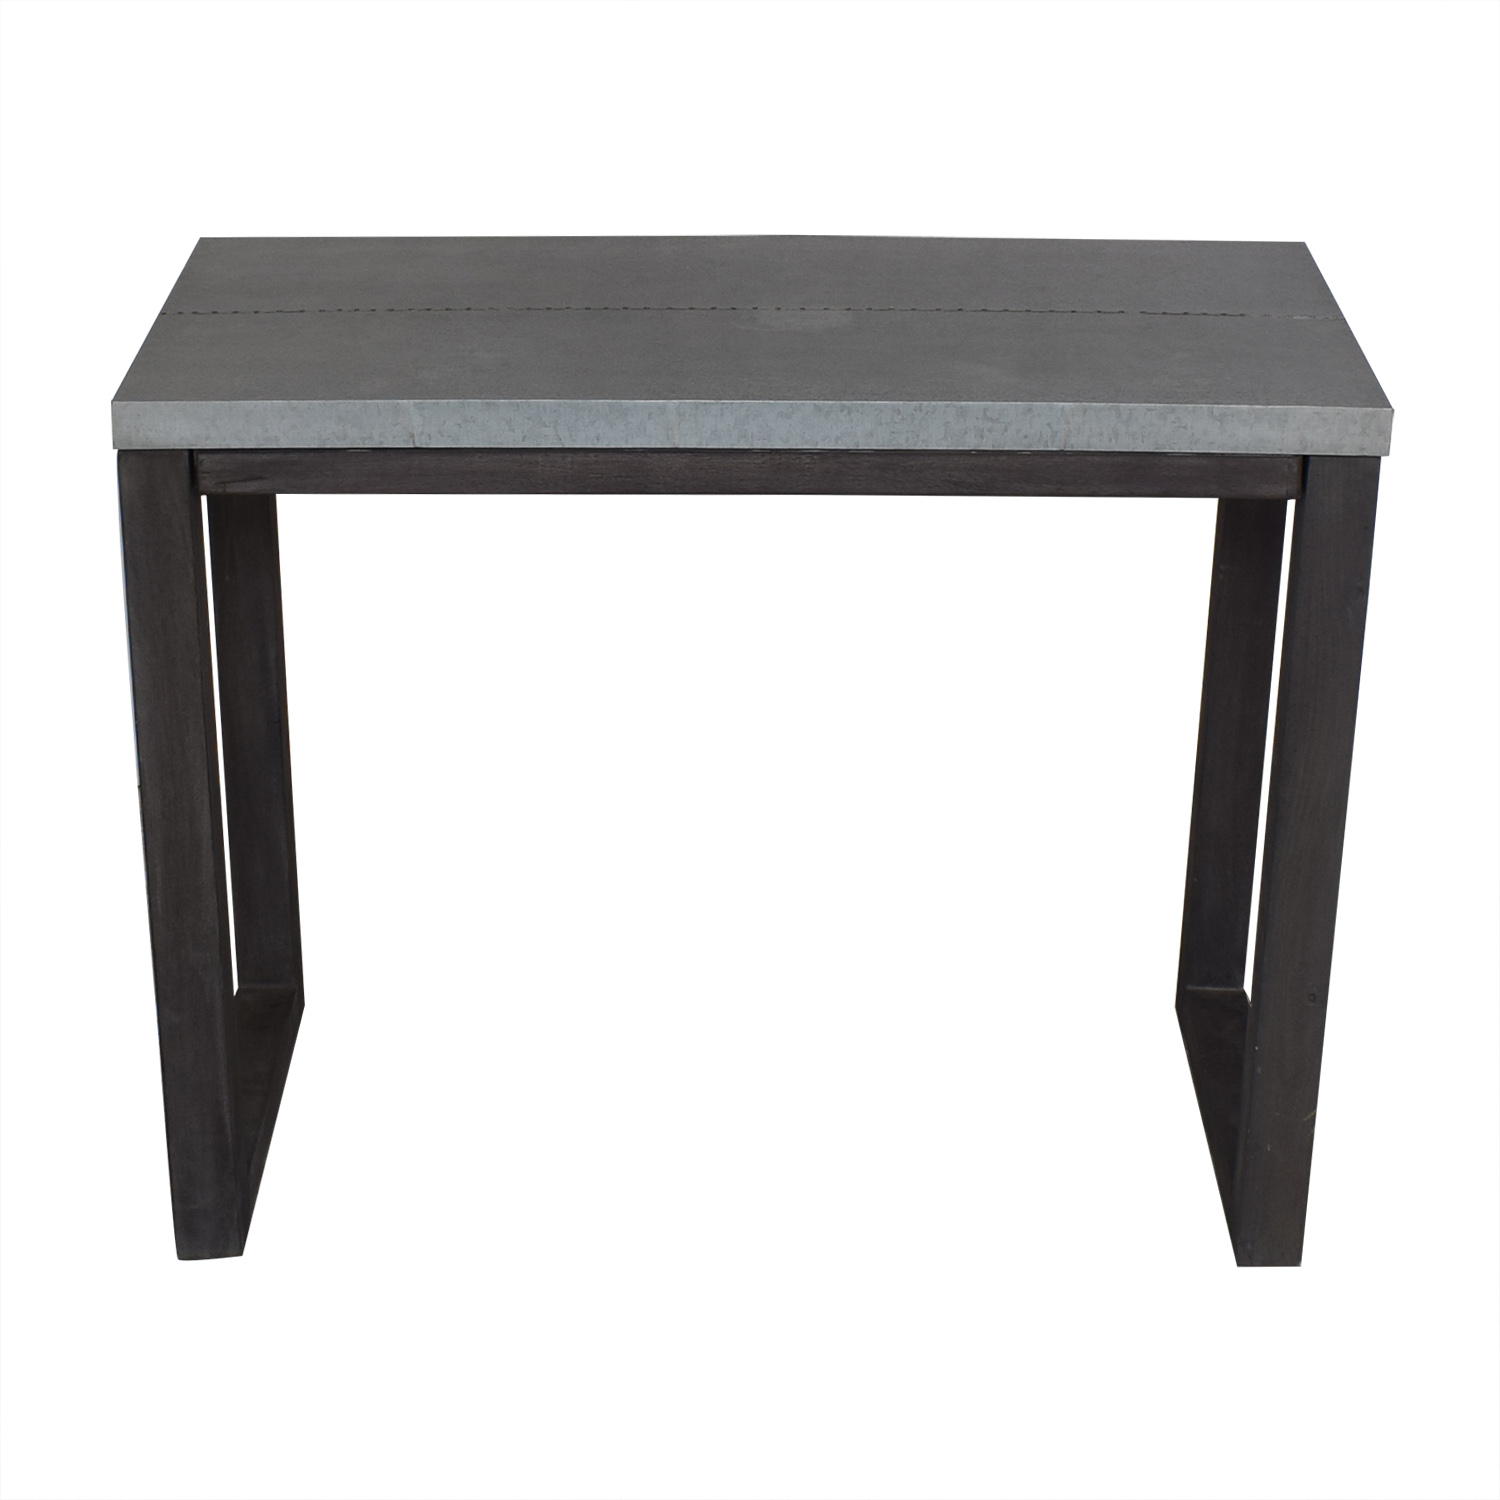 CB2 CB2 Steel Top Table nj